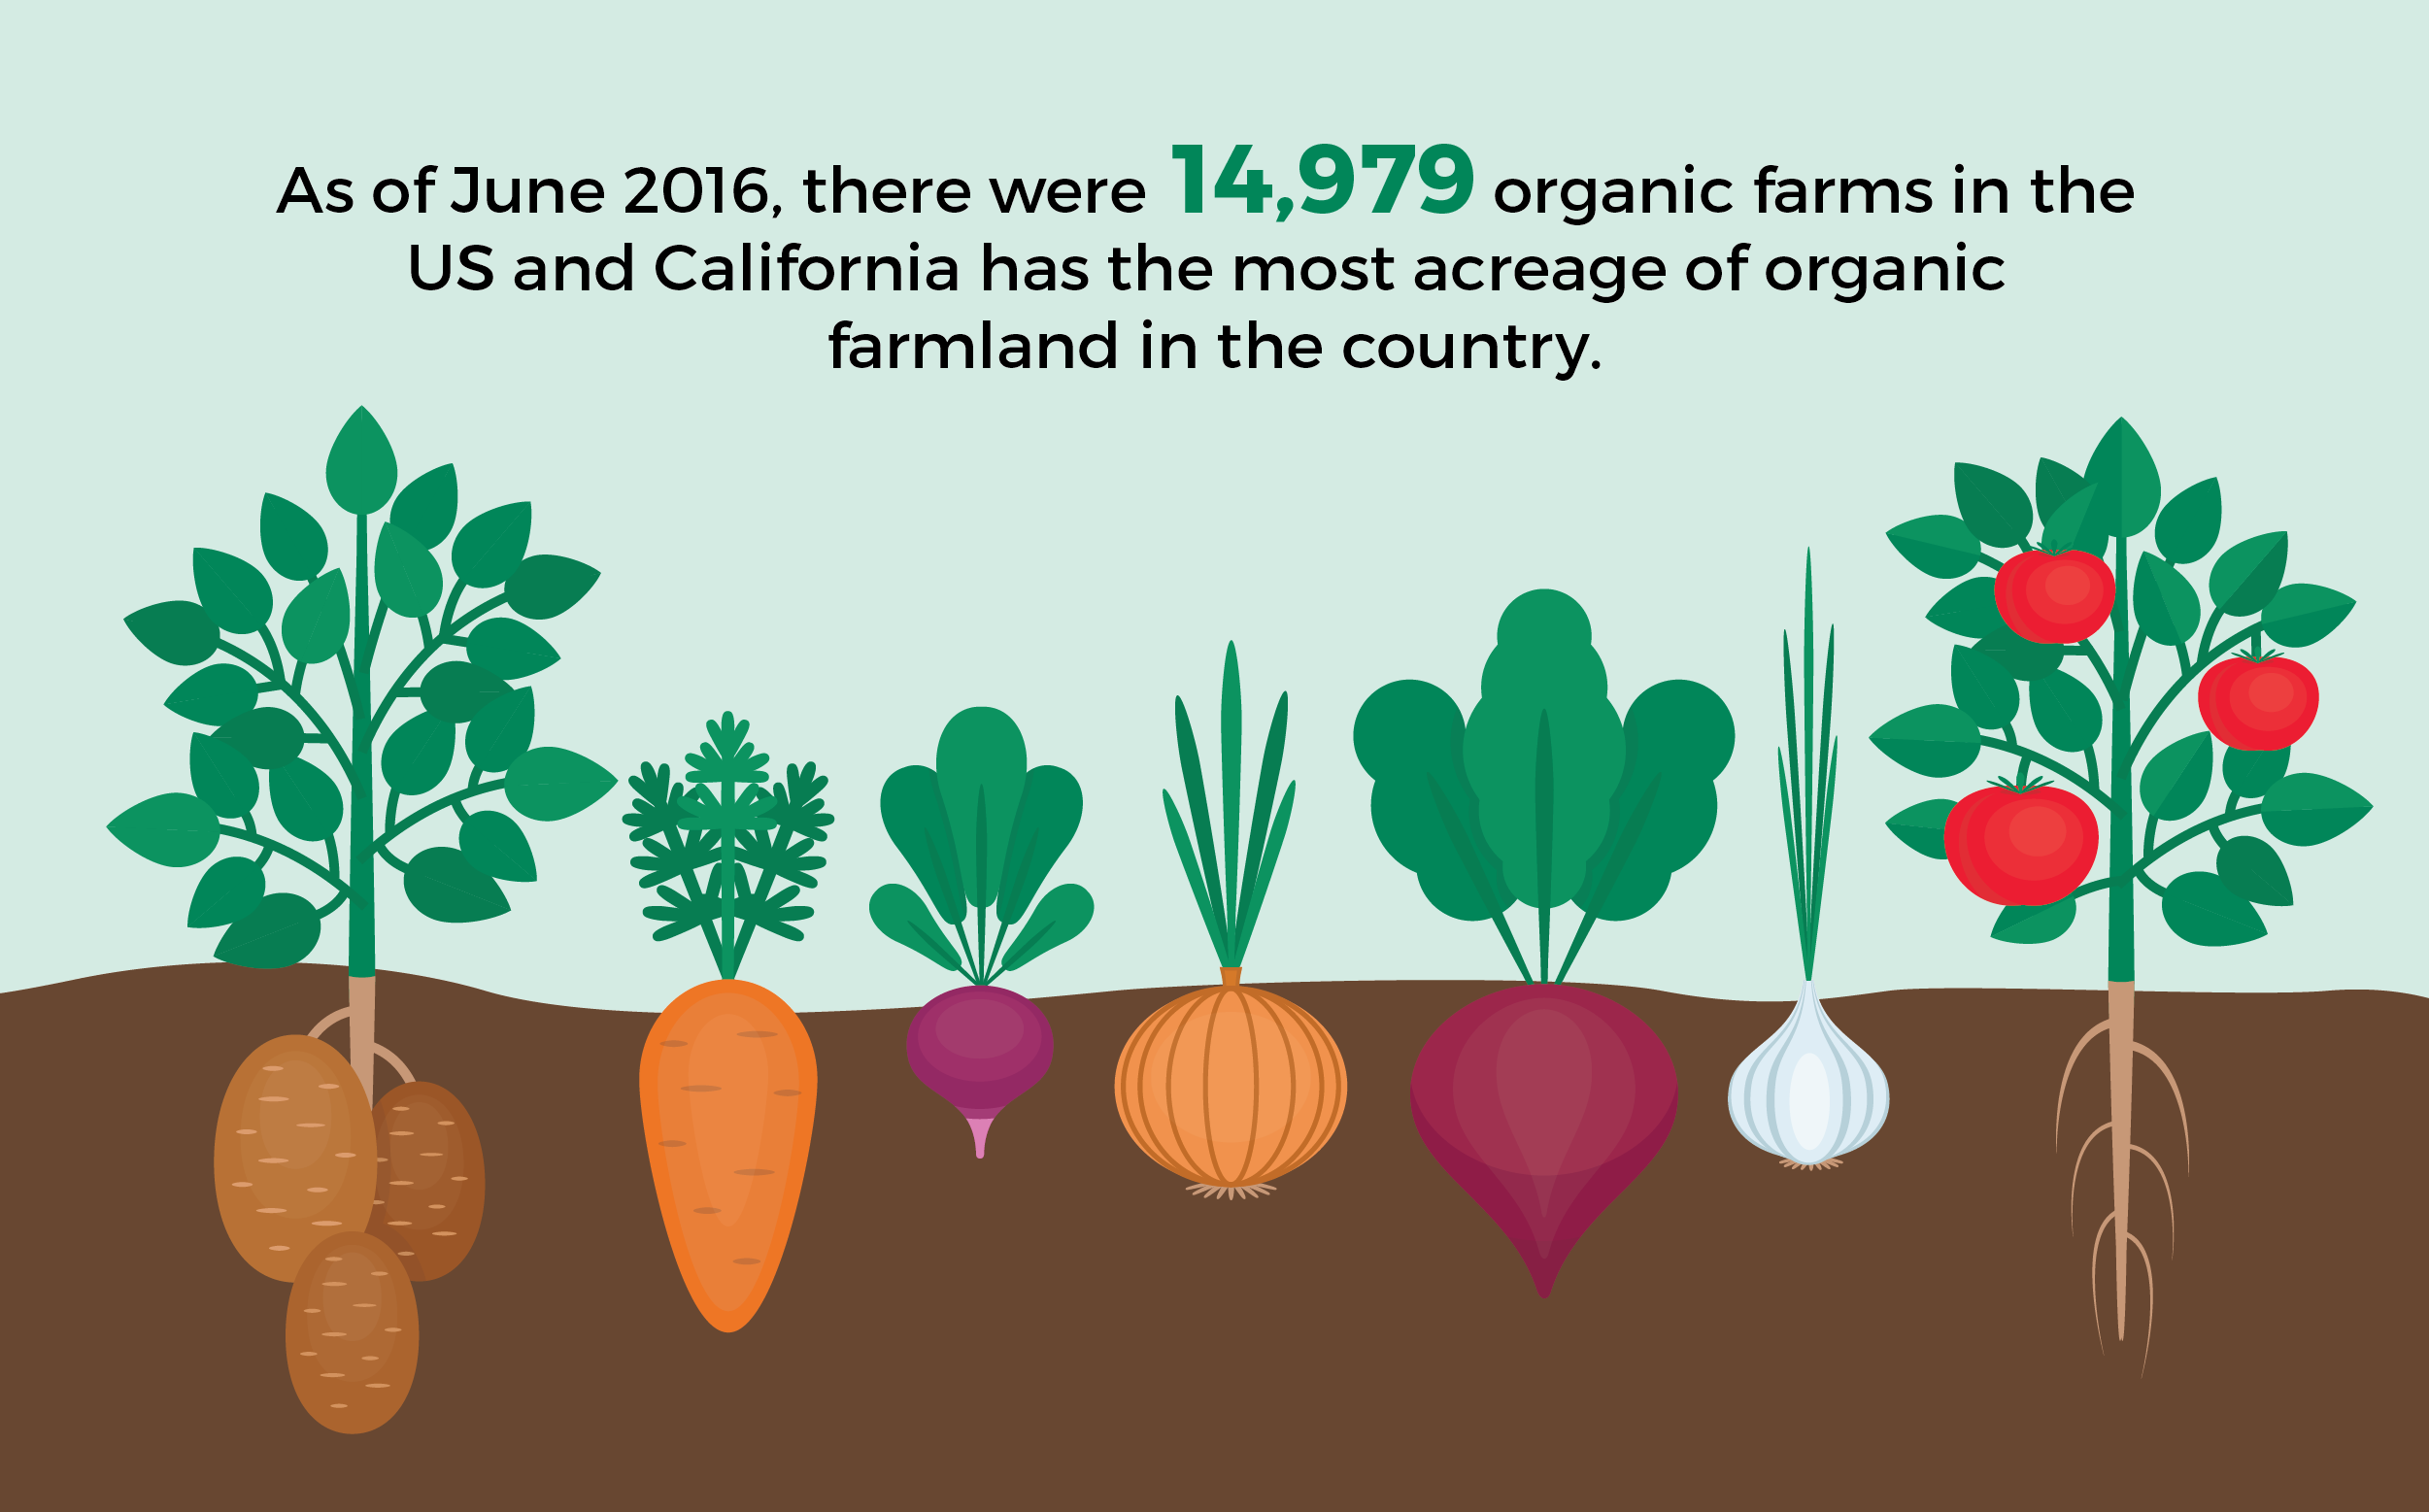 an infographic explaining that in 2016 there were 14,979 organic farms in the U.S., with California the state with the most organic farmland acreage